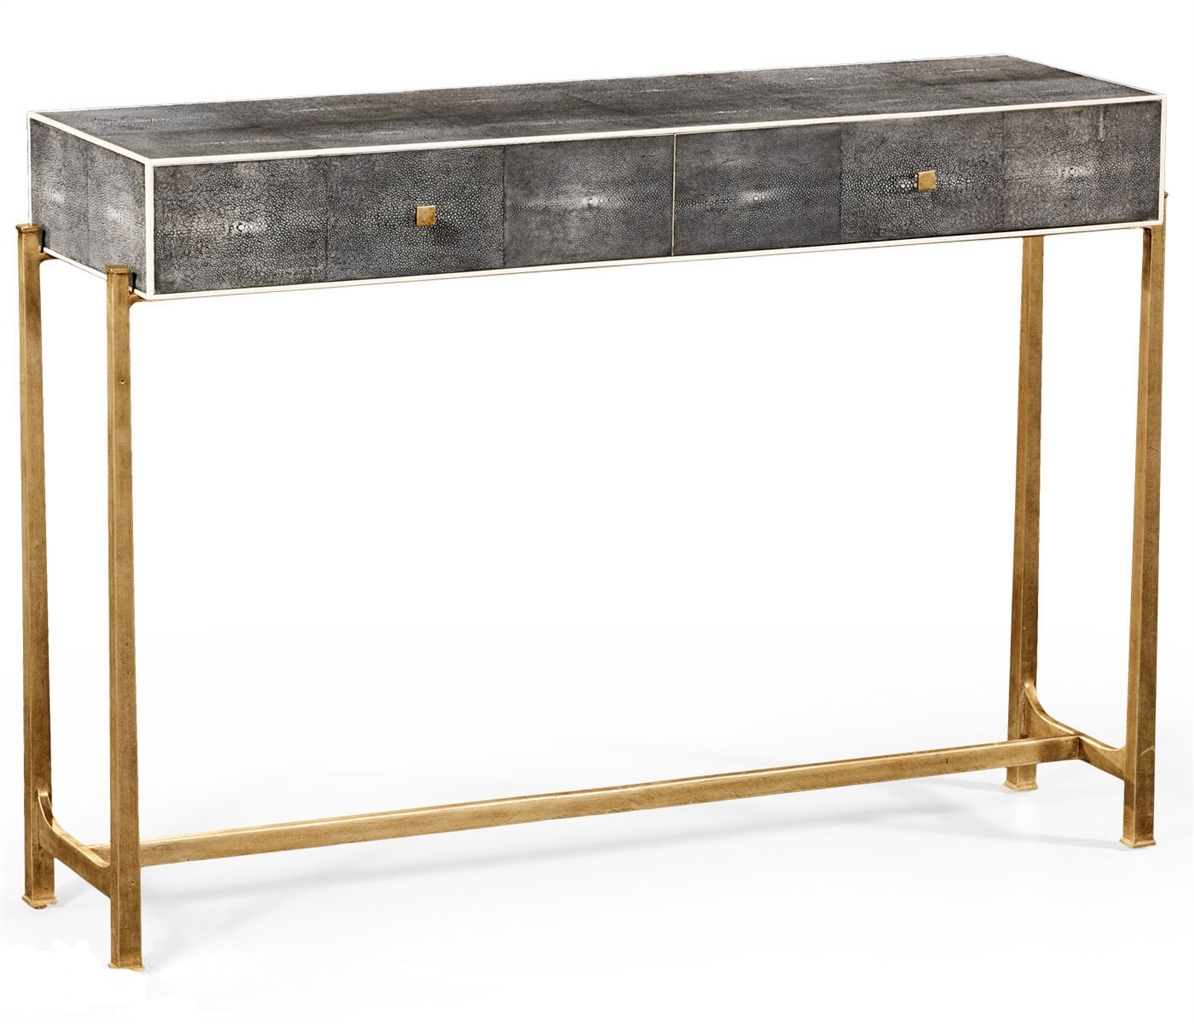 Contemporary Styled Wrought Iron Framed Console Table